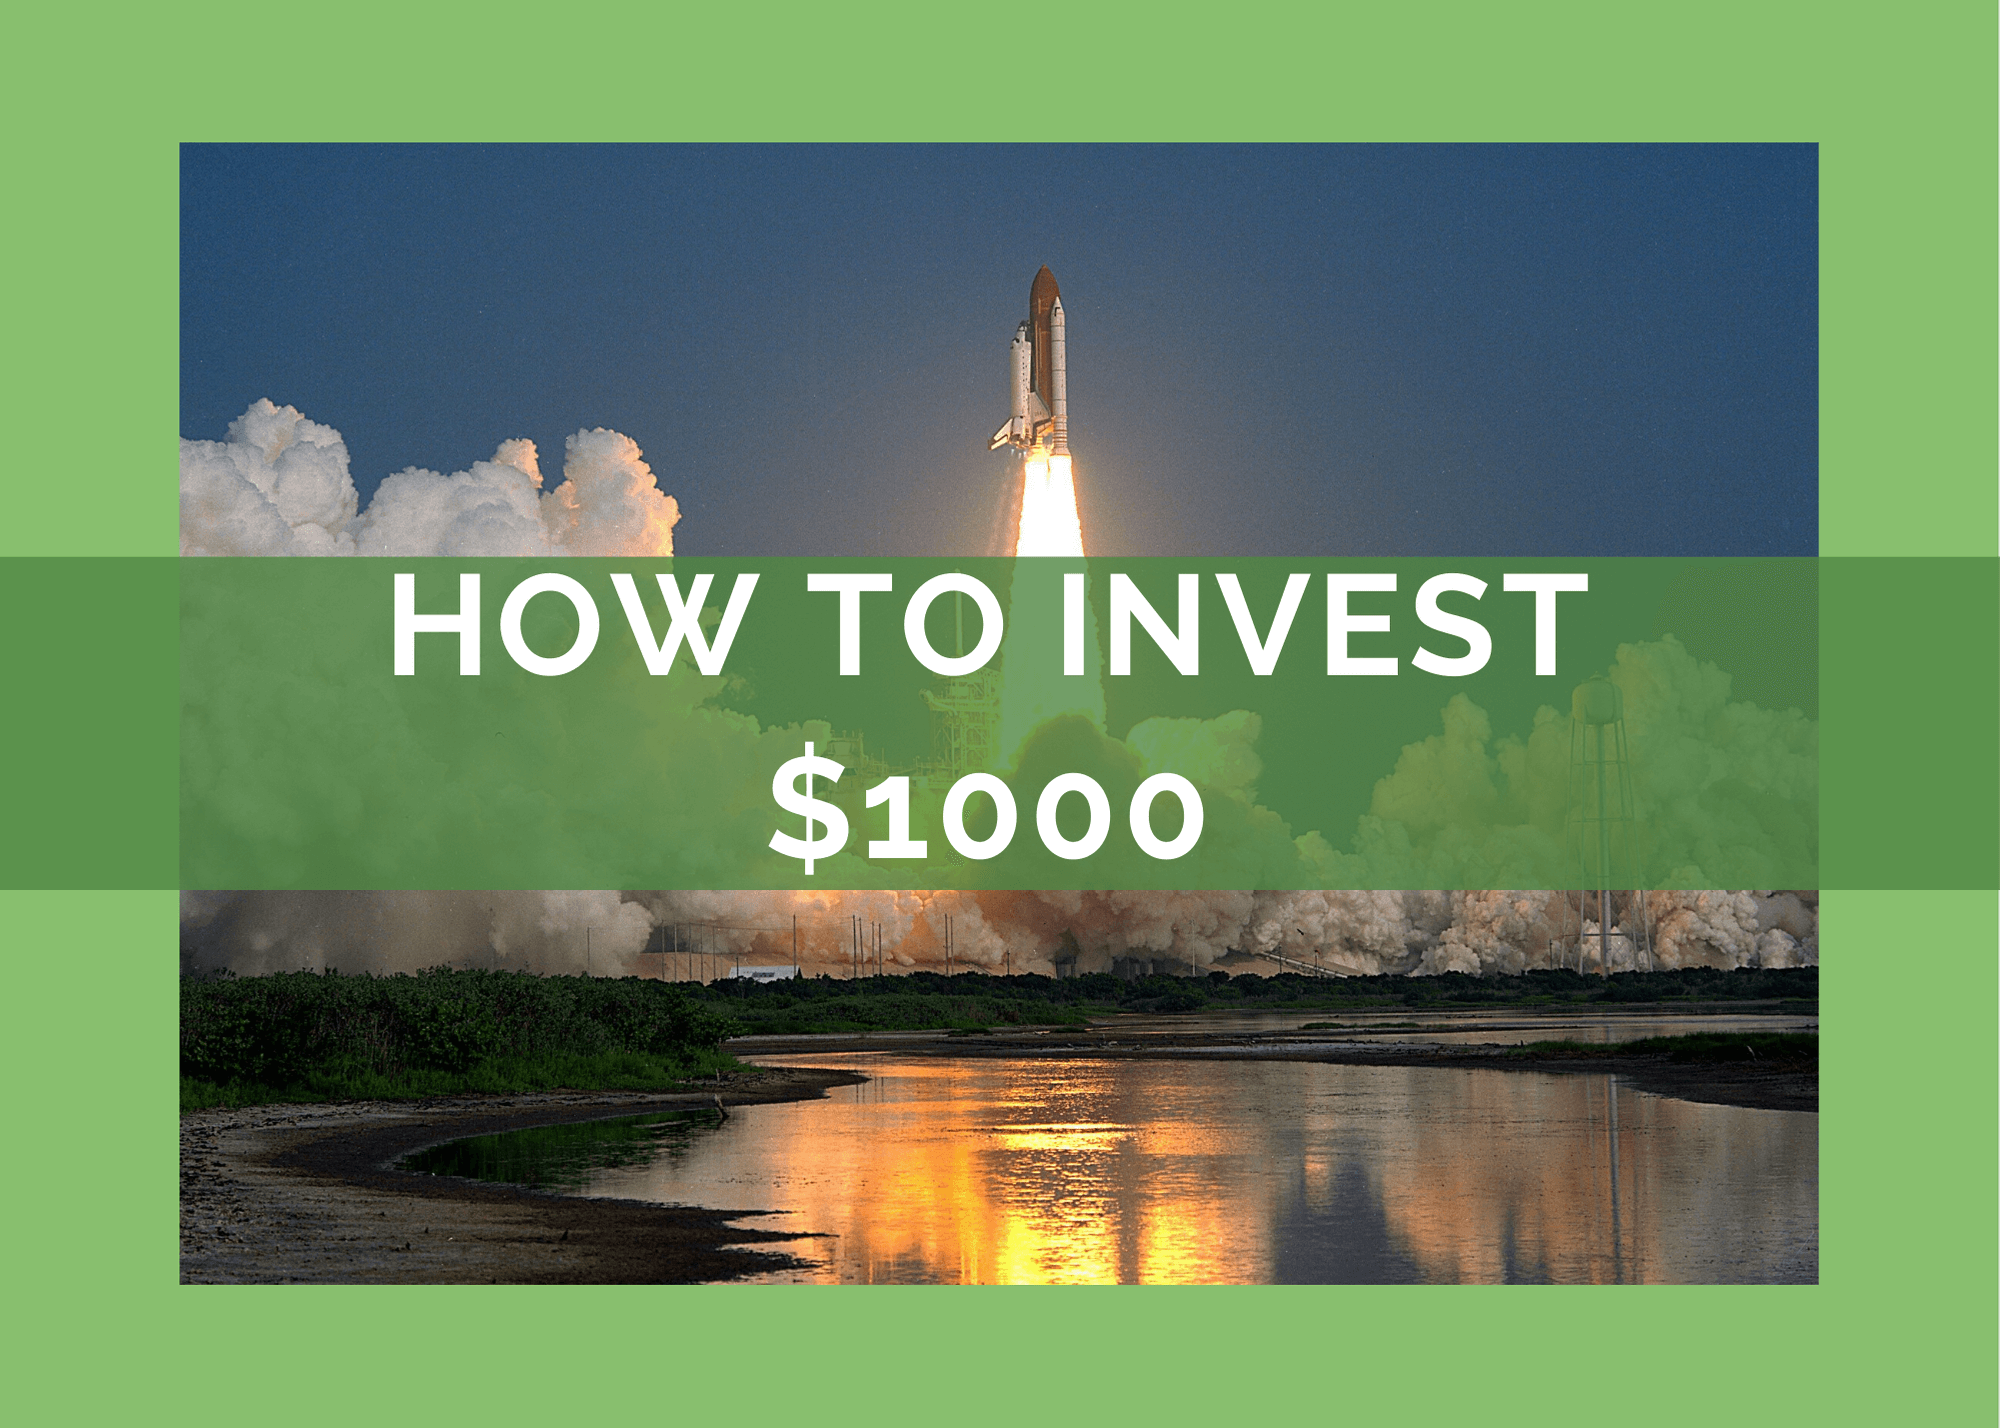 how-to-invest-1000-dollars